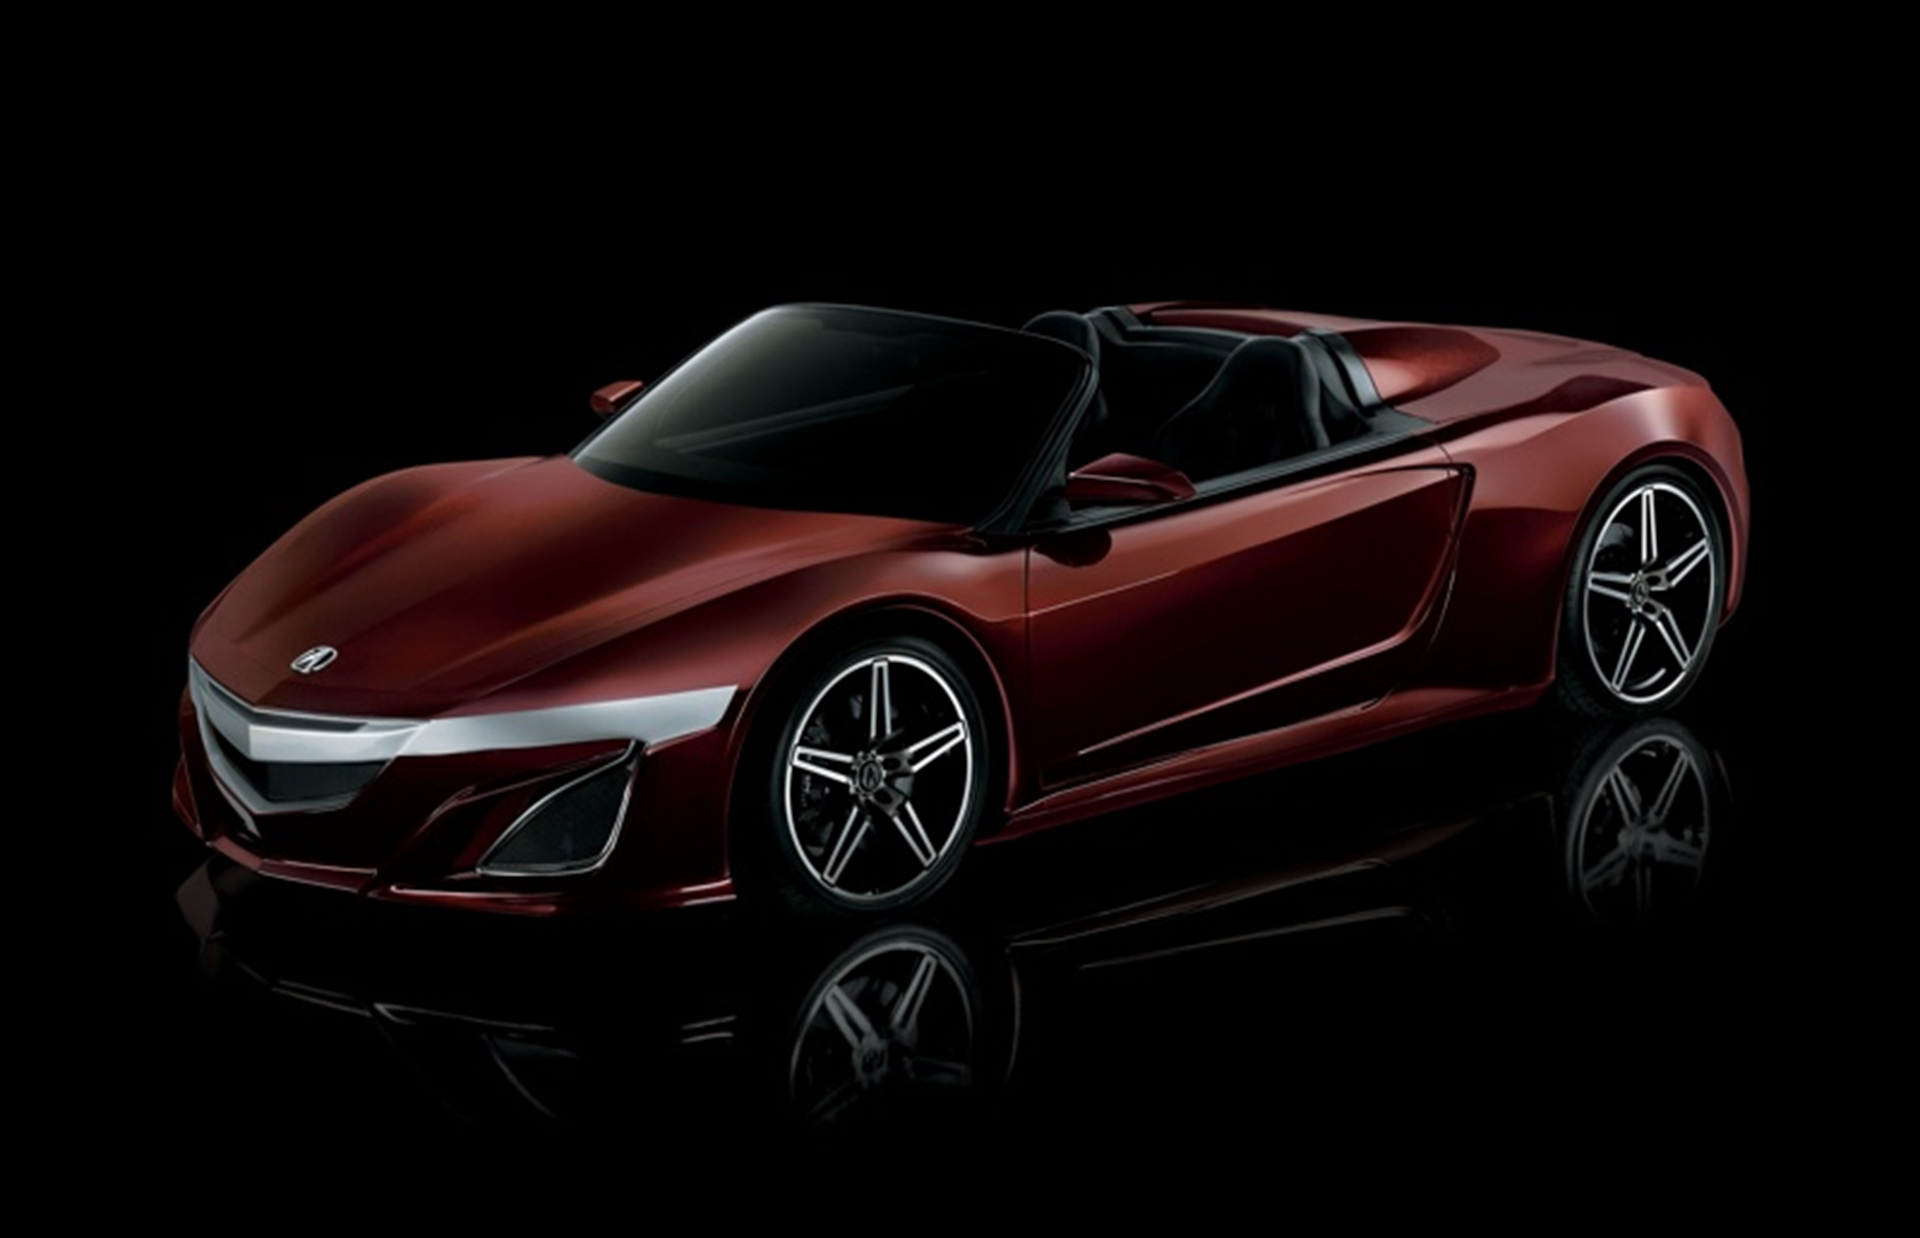 Honda Acura Sports Car Avengers